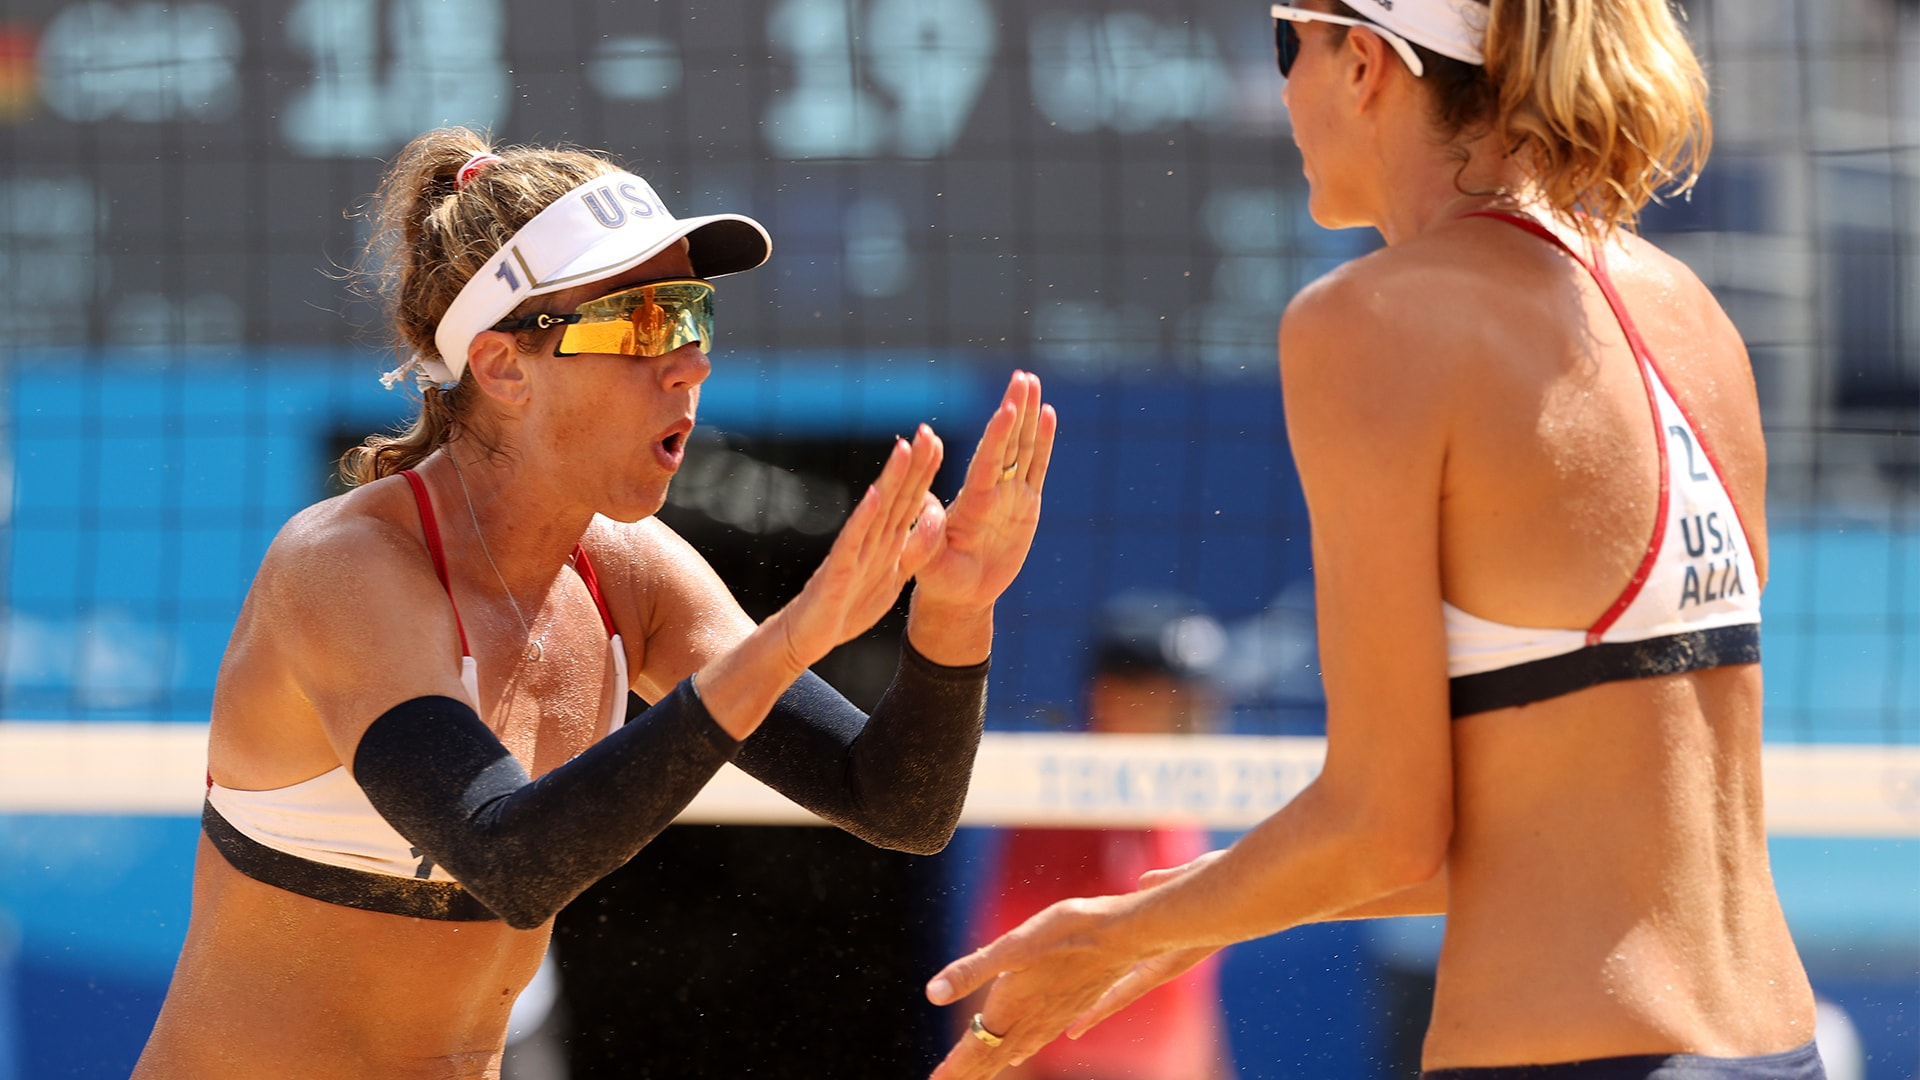 Image for Ross/Klineman down Germany in straight sets in quarterfinals